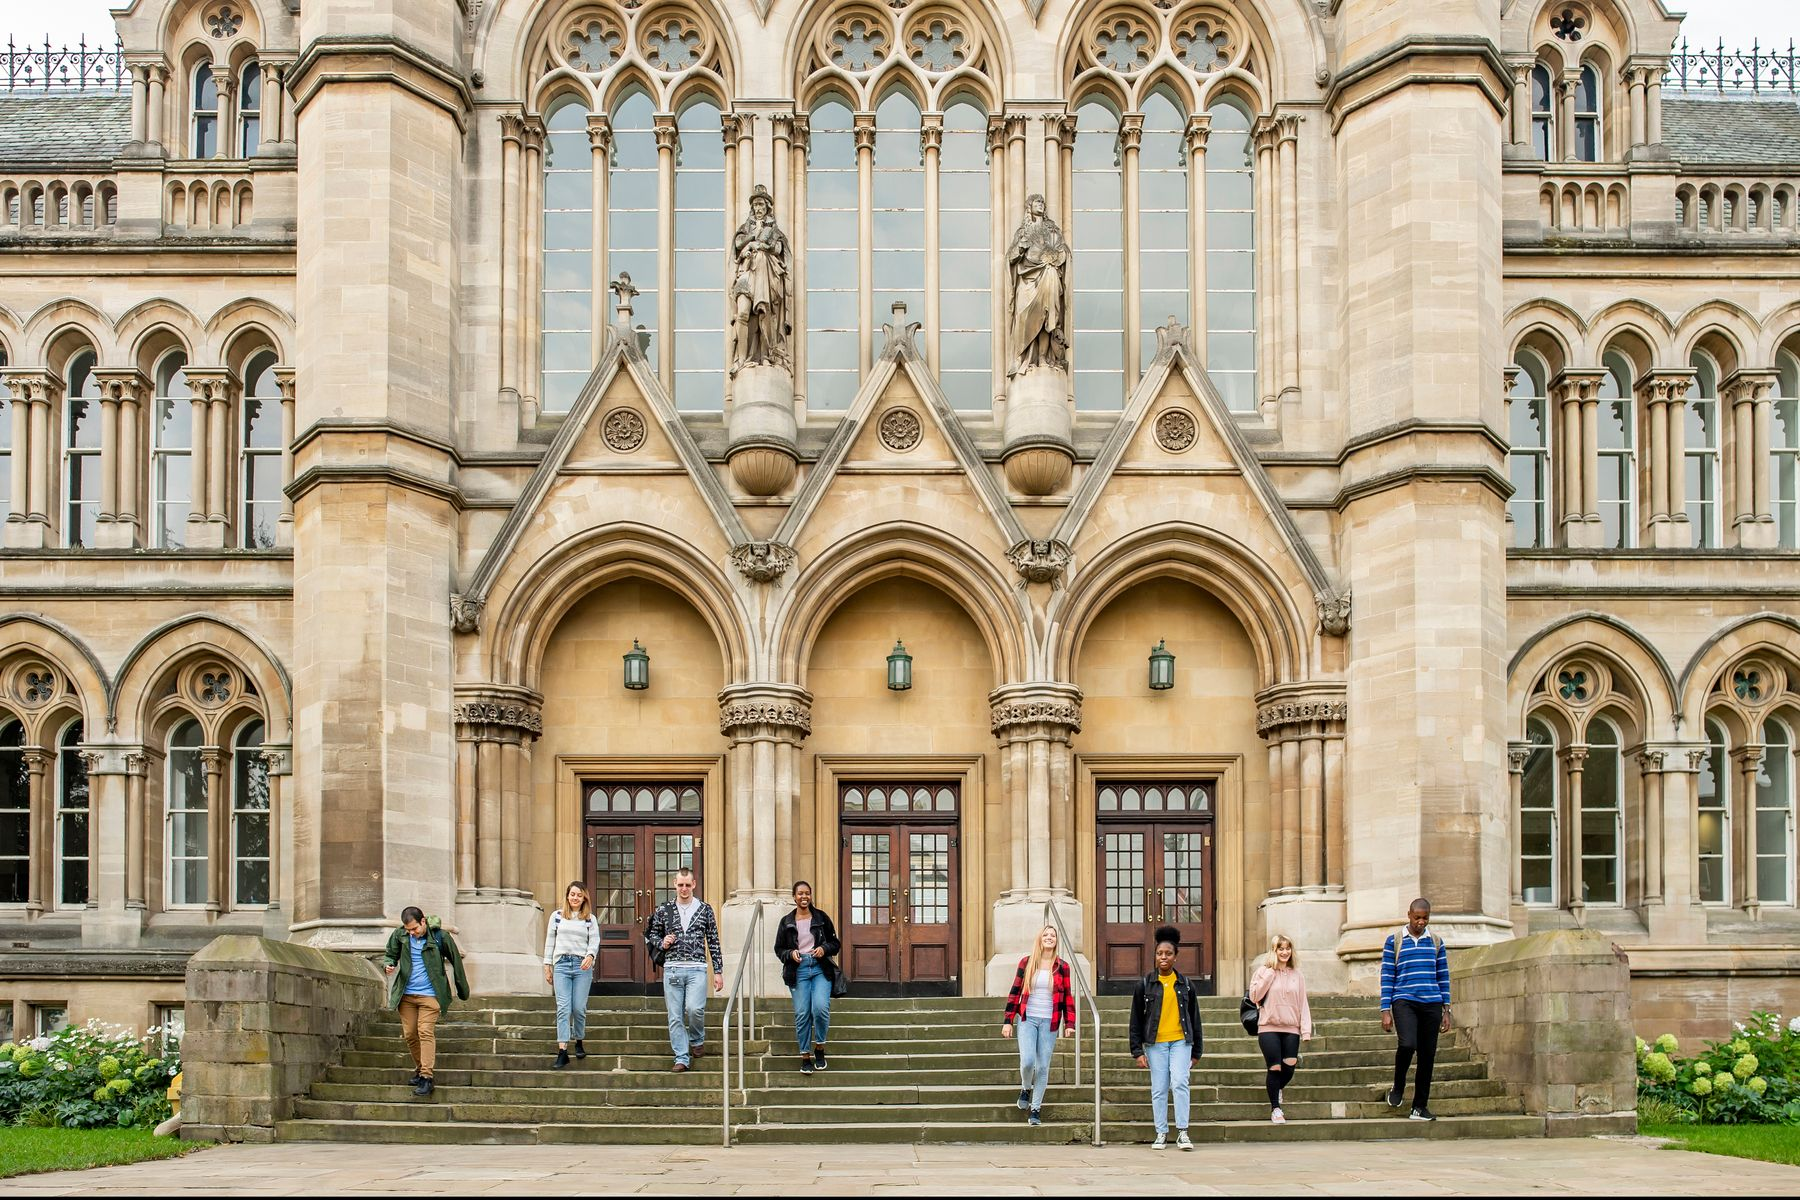 A wide shot of the Arkwright building showing several students walking down the steps